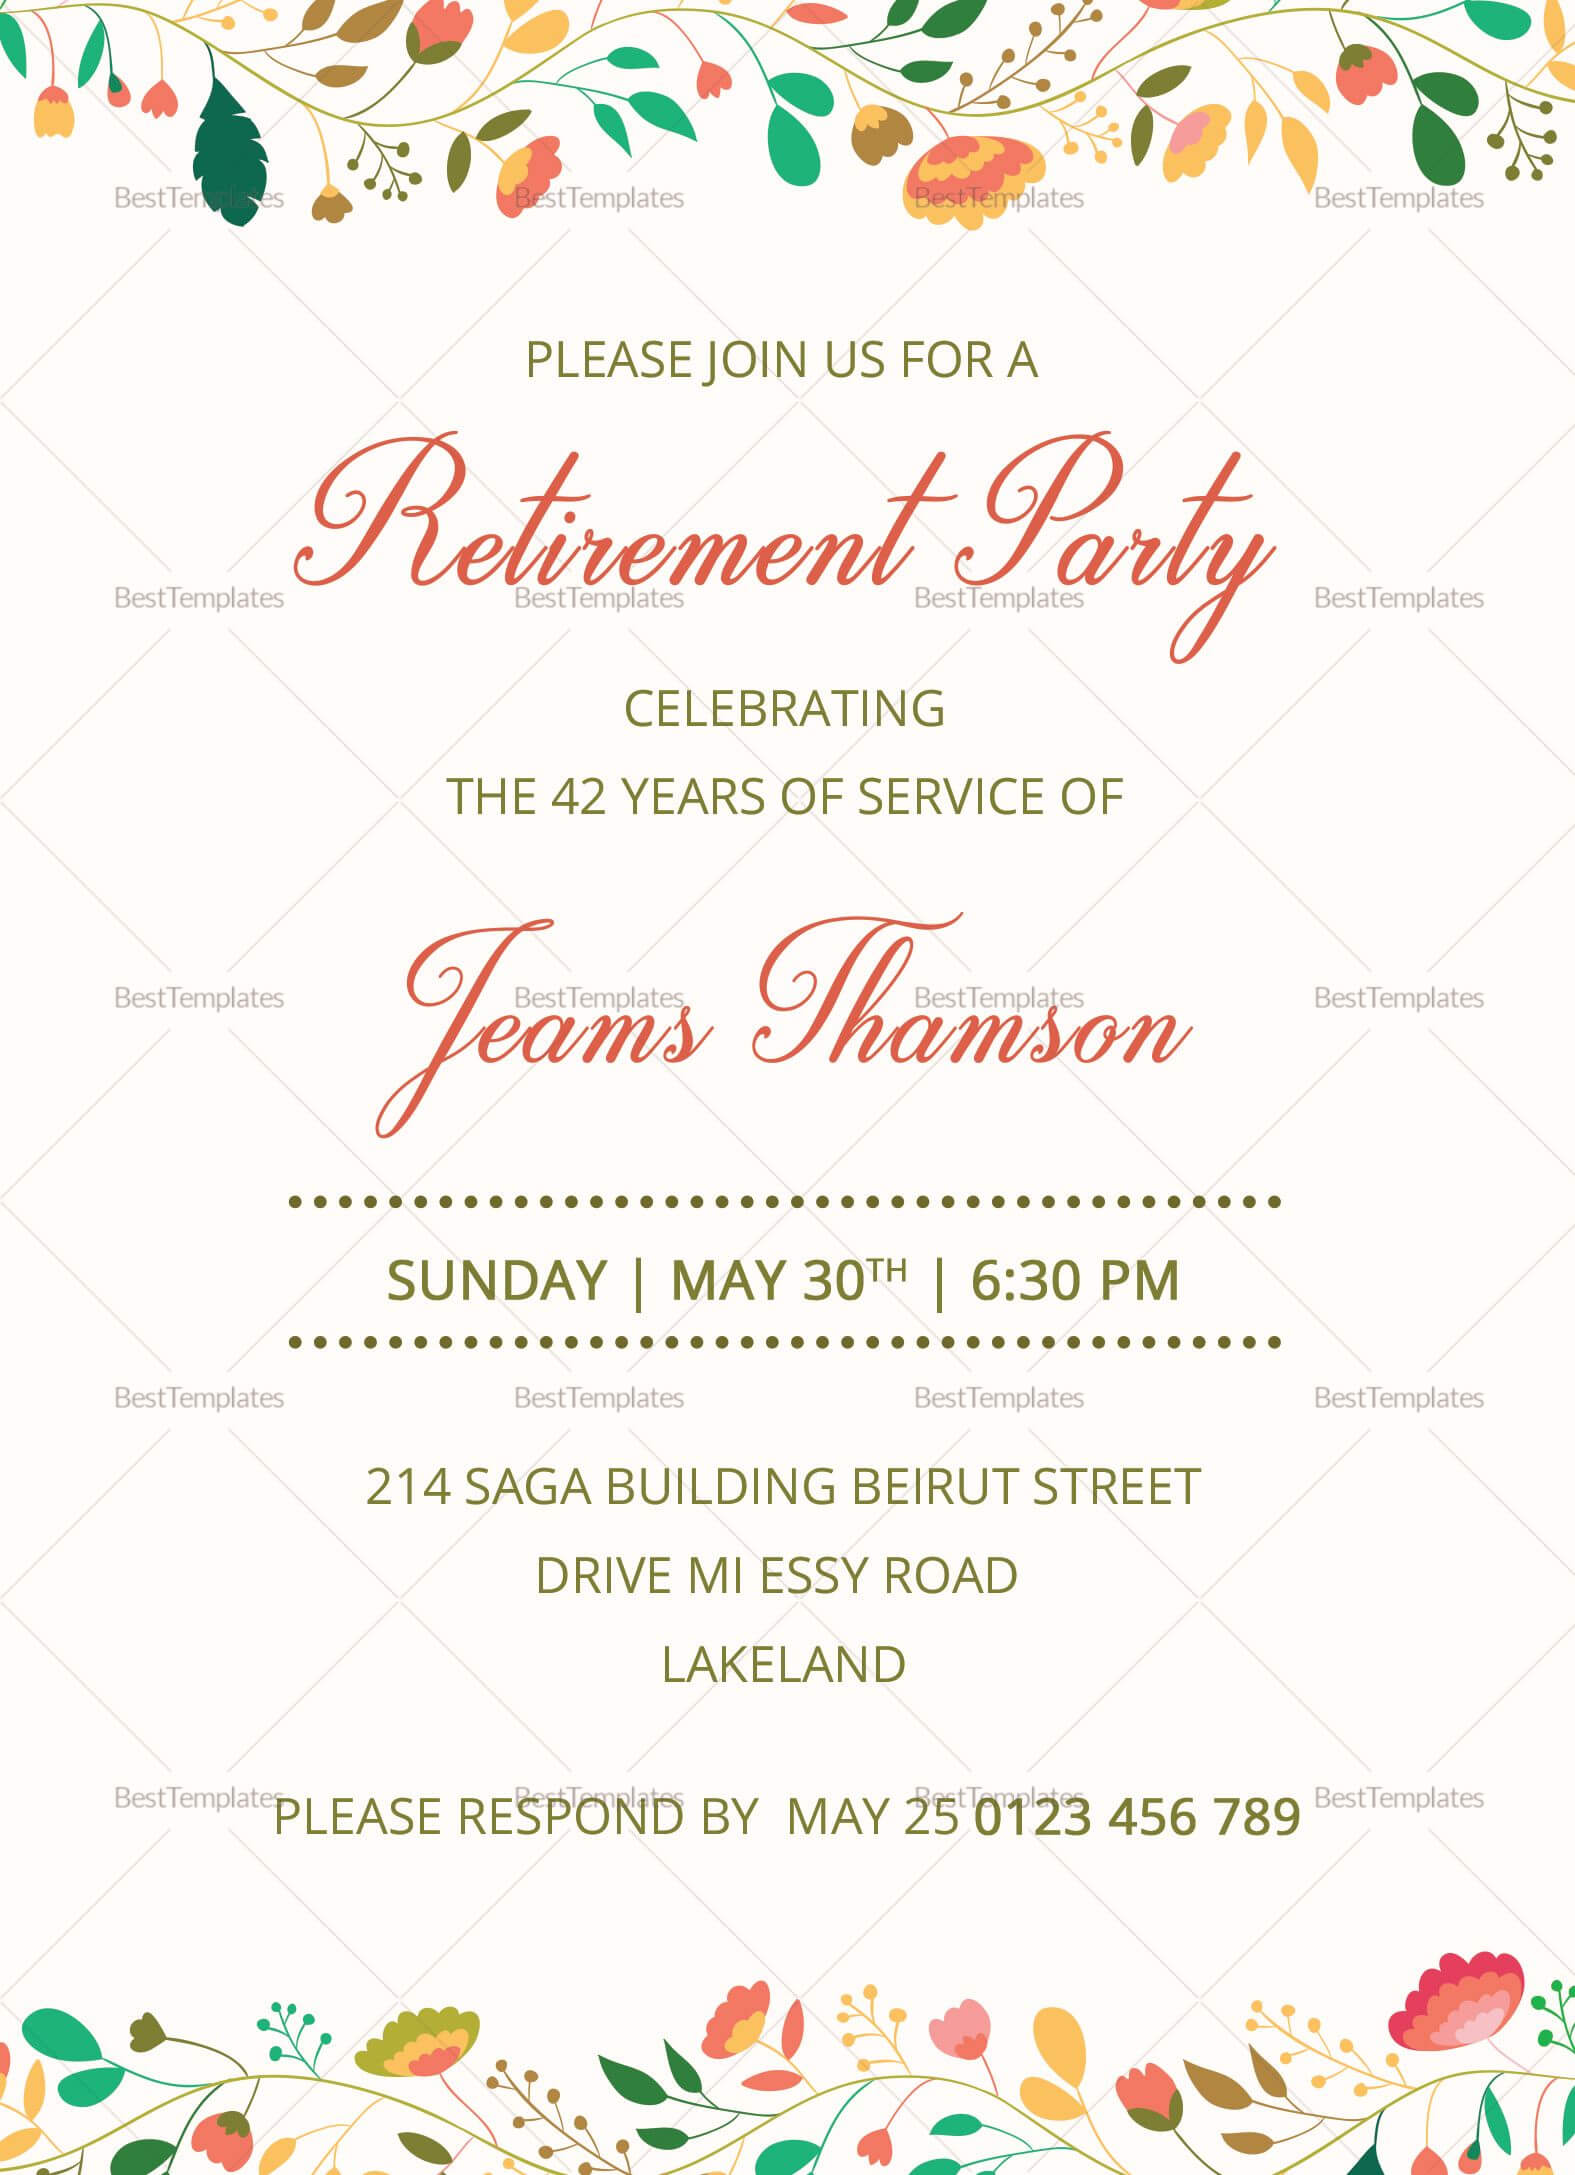 Corporate Retirement Party Invitation Template | Retirement In Retirement Card Template